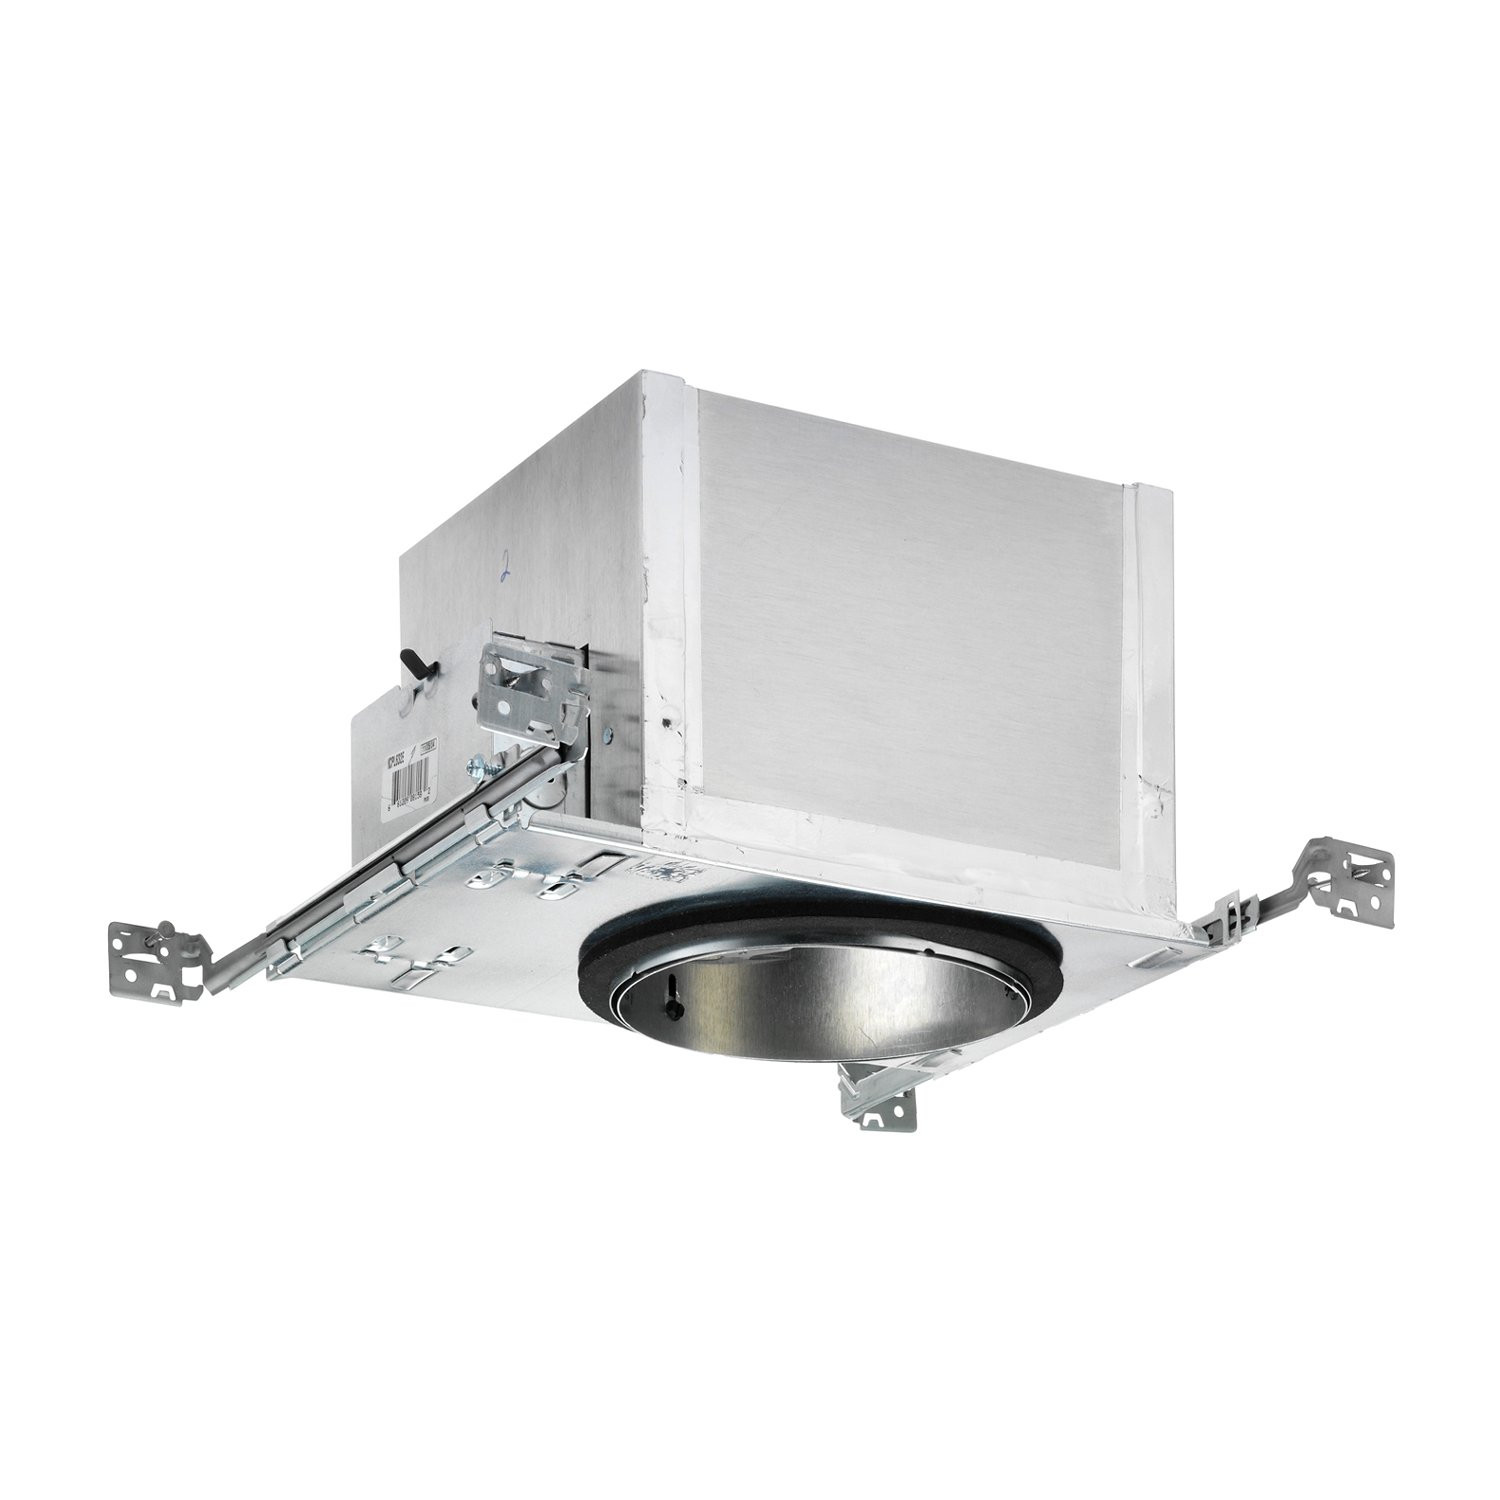 Best ideas about Juno Recessed Lighting . Save or Pin Juno Lighting Group ICPL632E 6 in Watt CFL Housing Now.